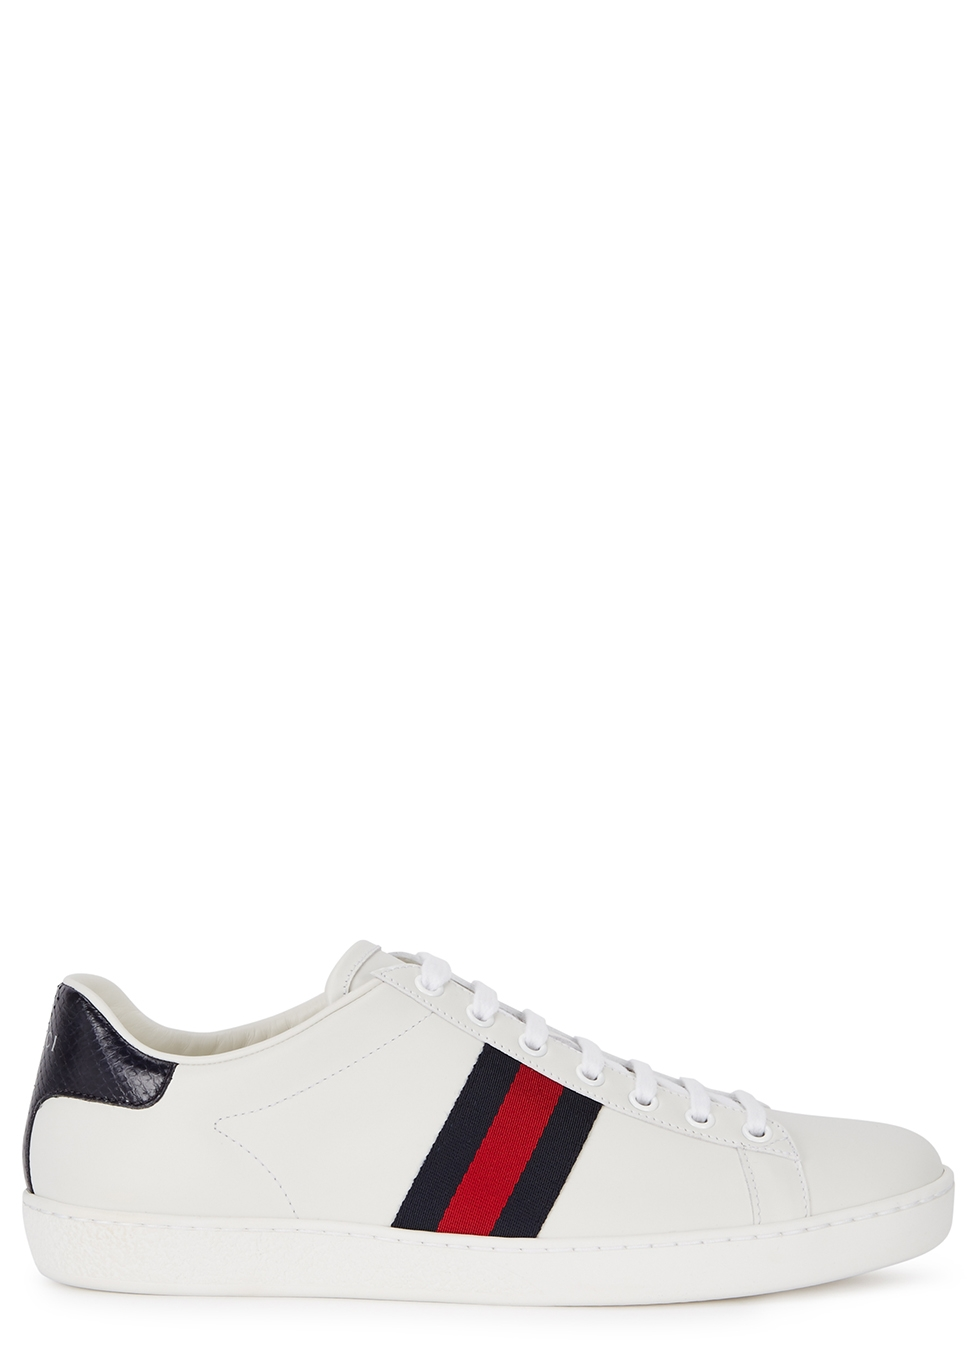 Gucci New Ace off-white leather